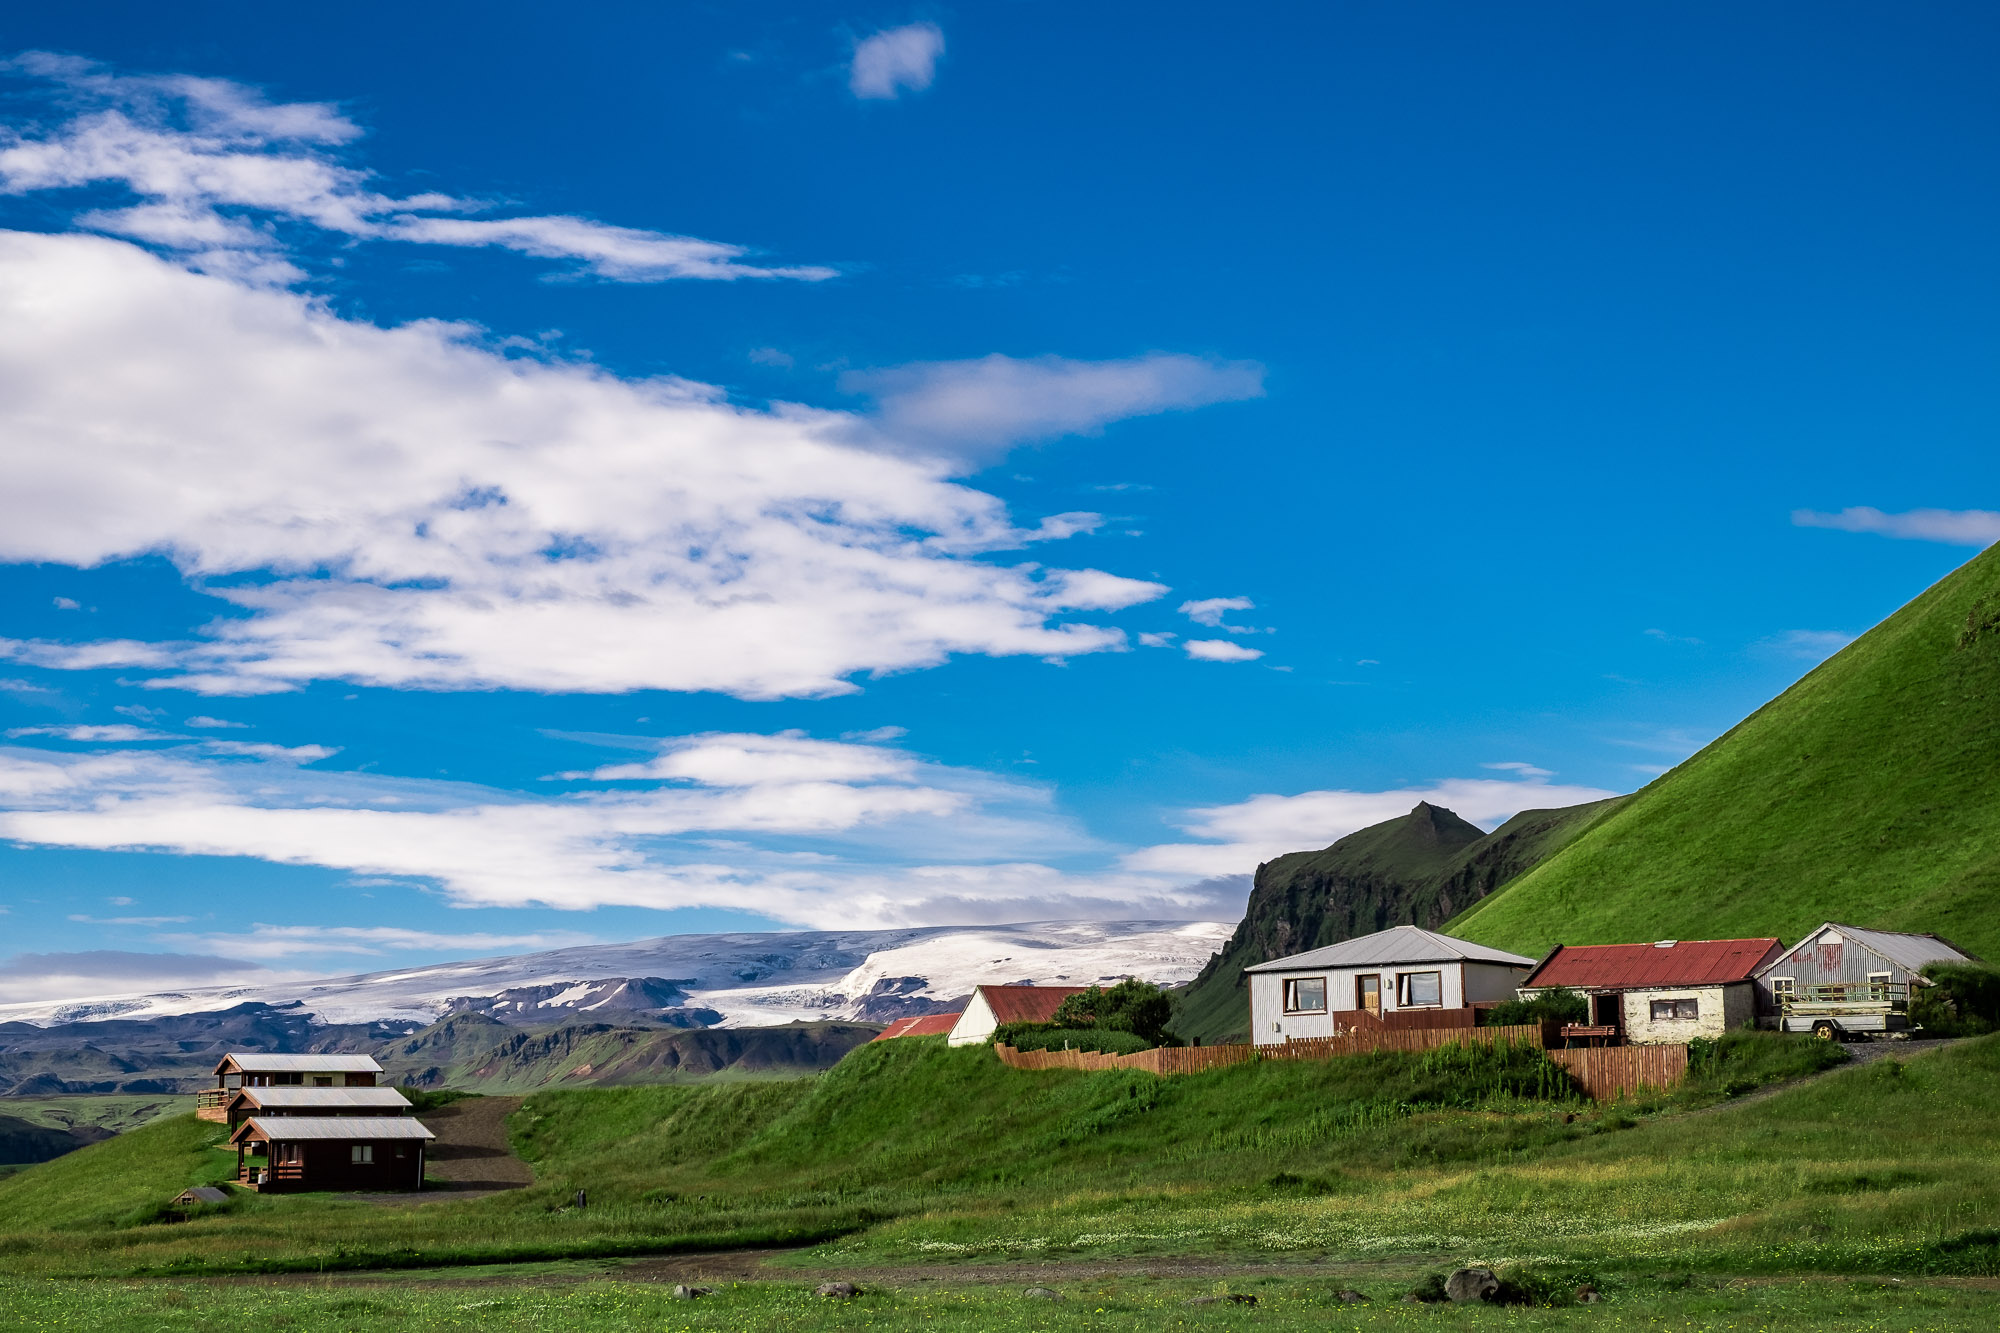 Mountain Village (Iceland)